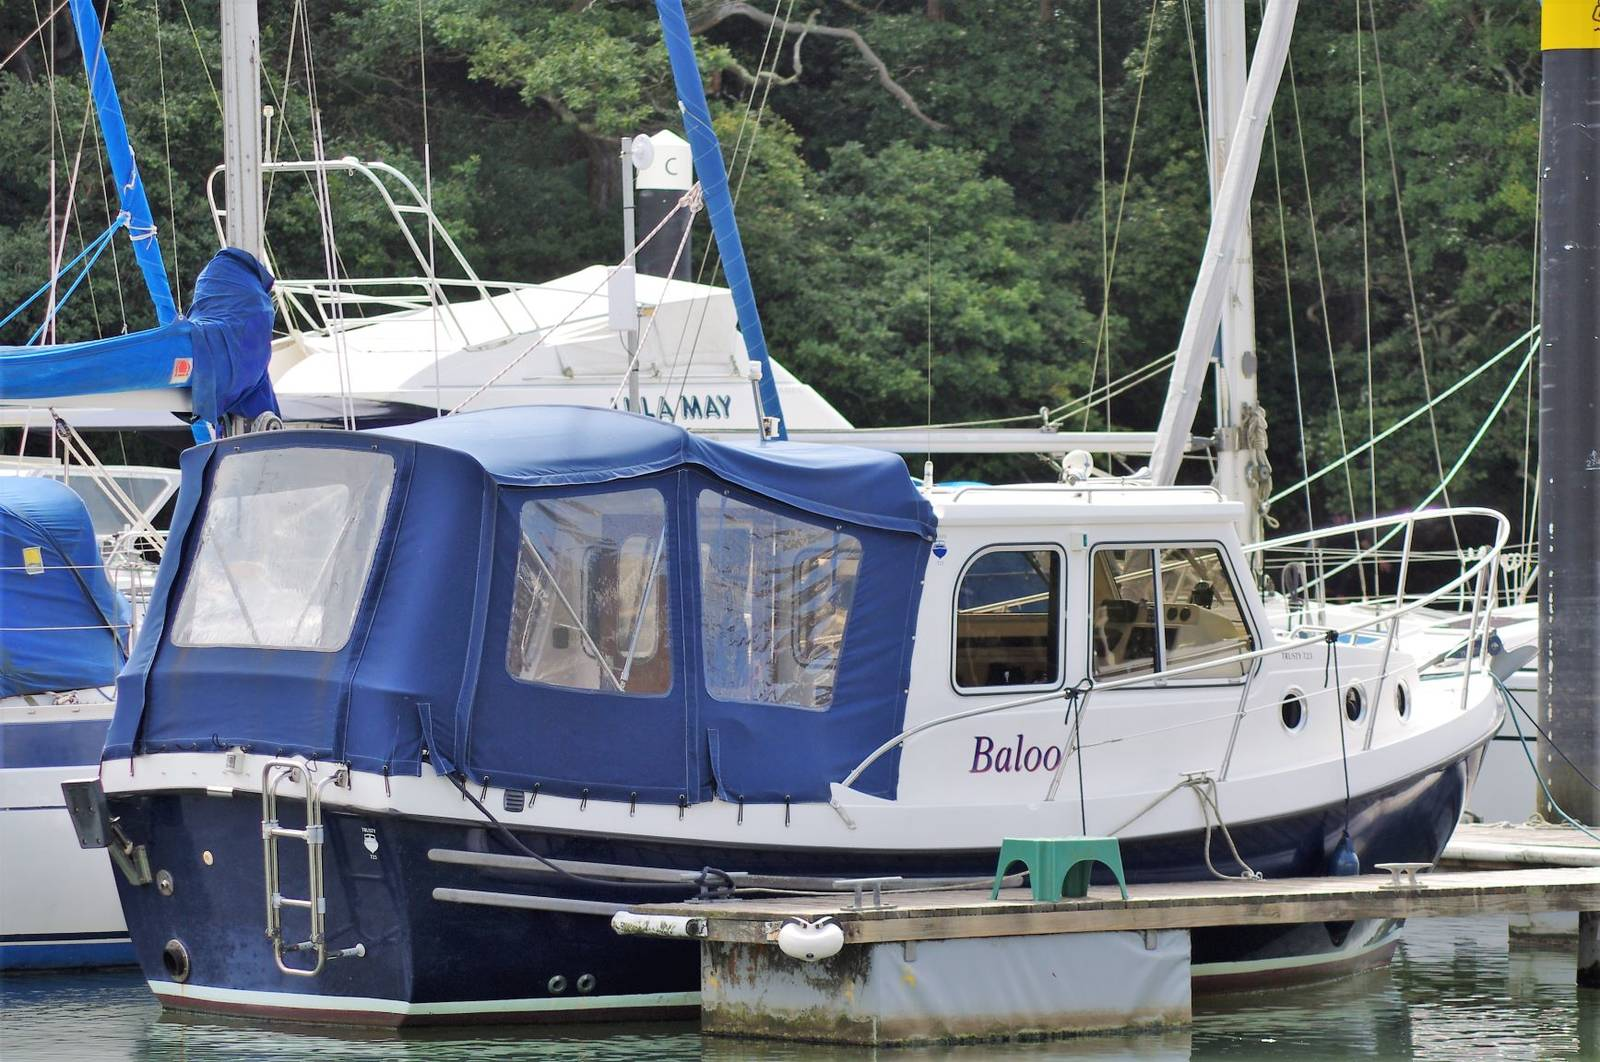 Trust T23 Boat for Sale (2007) at Yachts.co Neyland SA73 1PY visit: www.yachts.co Call: 01646602500 email: neyland@yachts.co